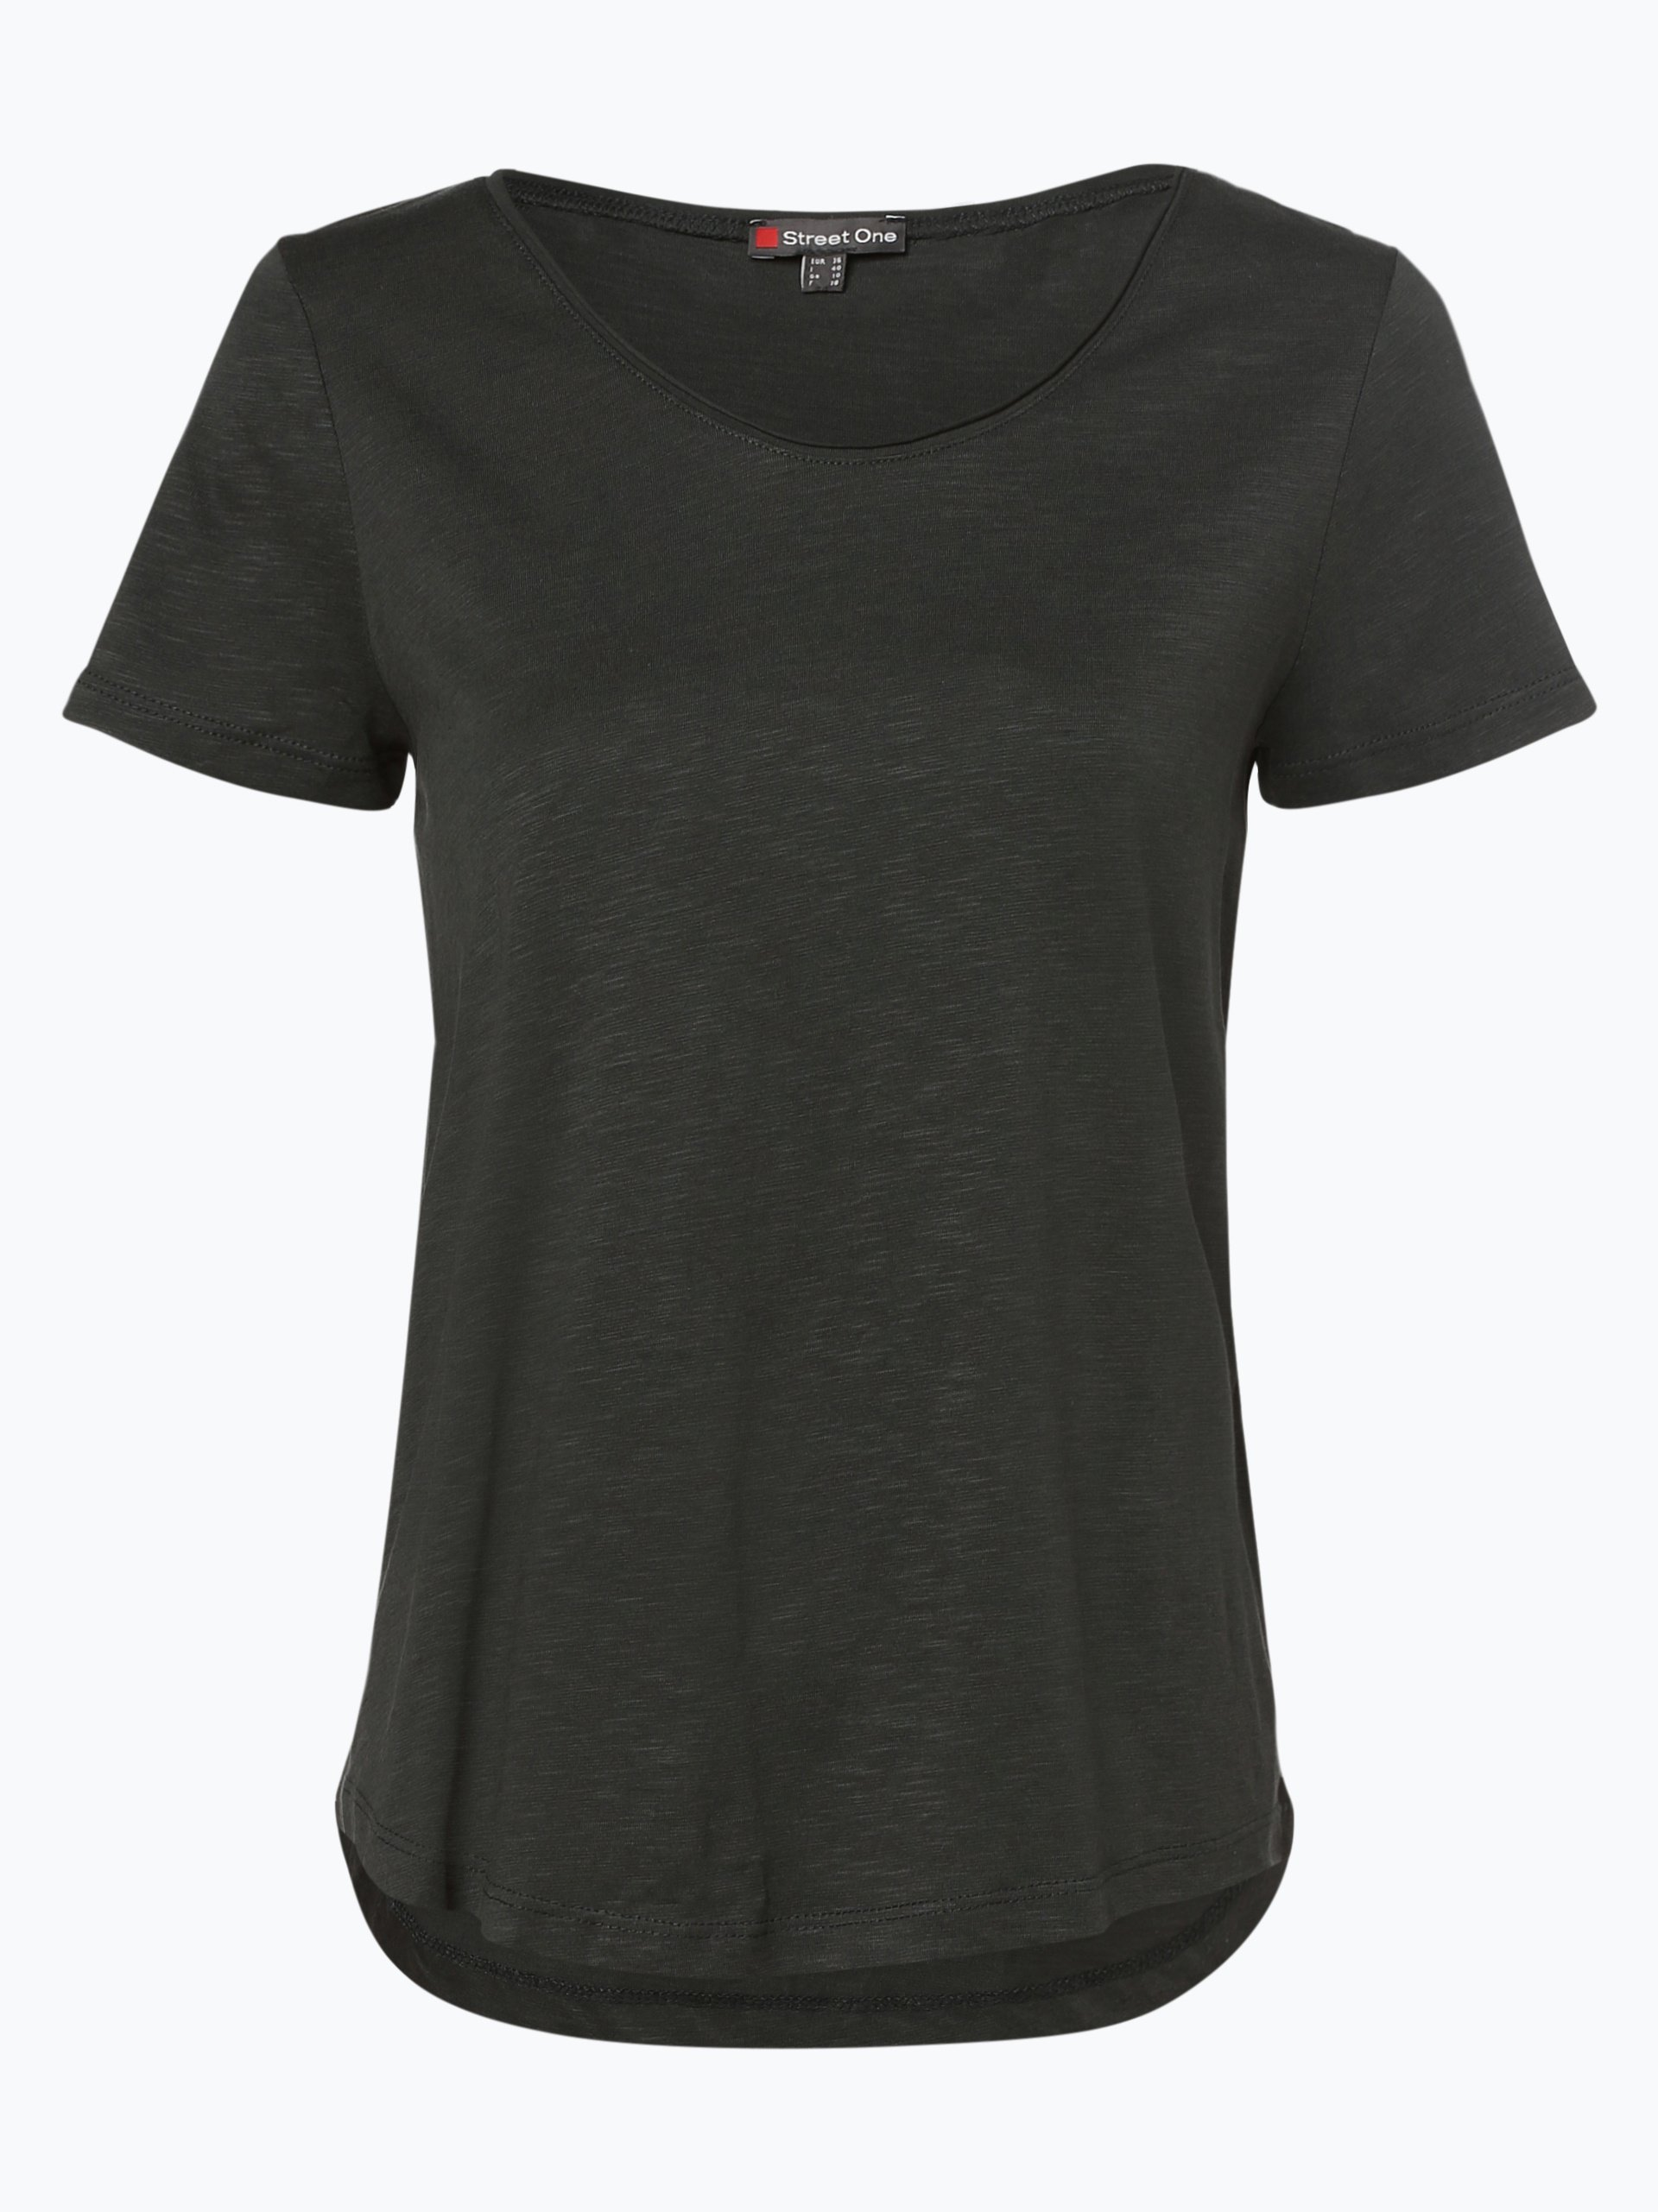 Street One Damen T-Shirt